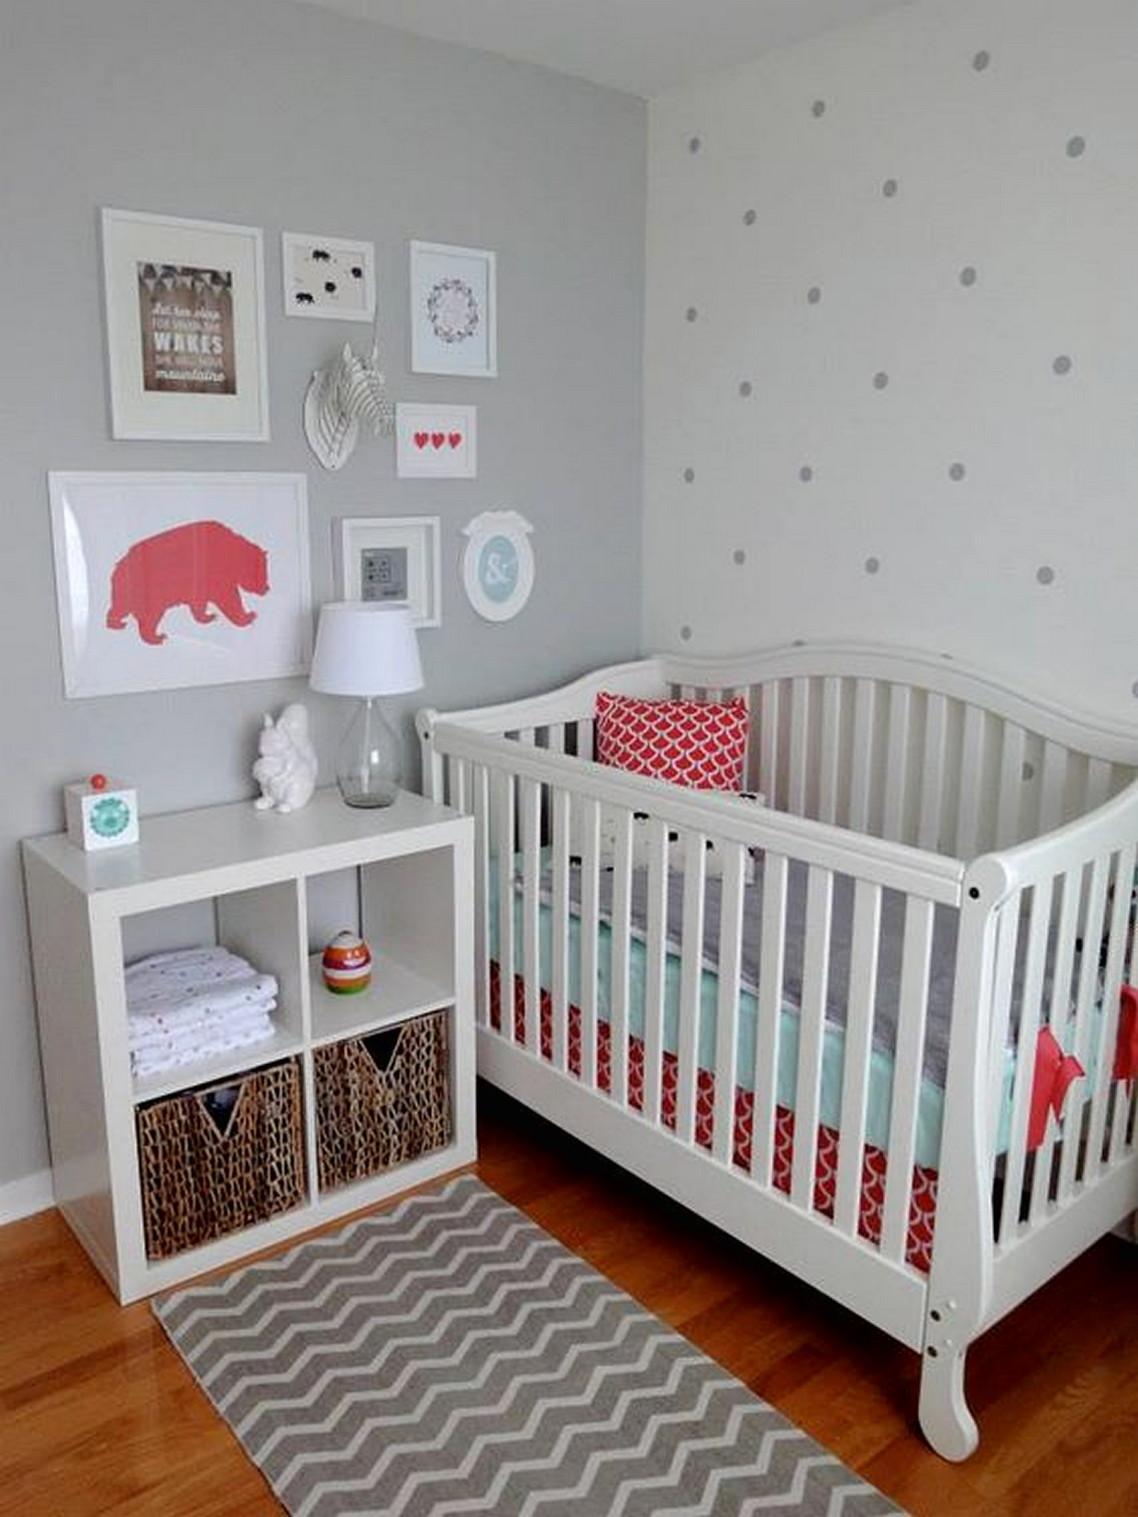 Grey Polka Dot Wall Decals Baby Room Style Ideas Decals For Baby Rooms Architecturein